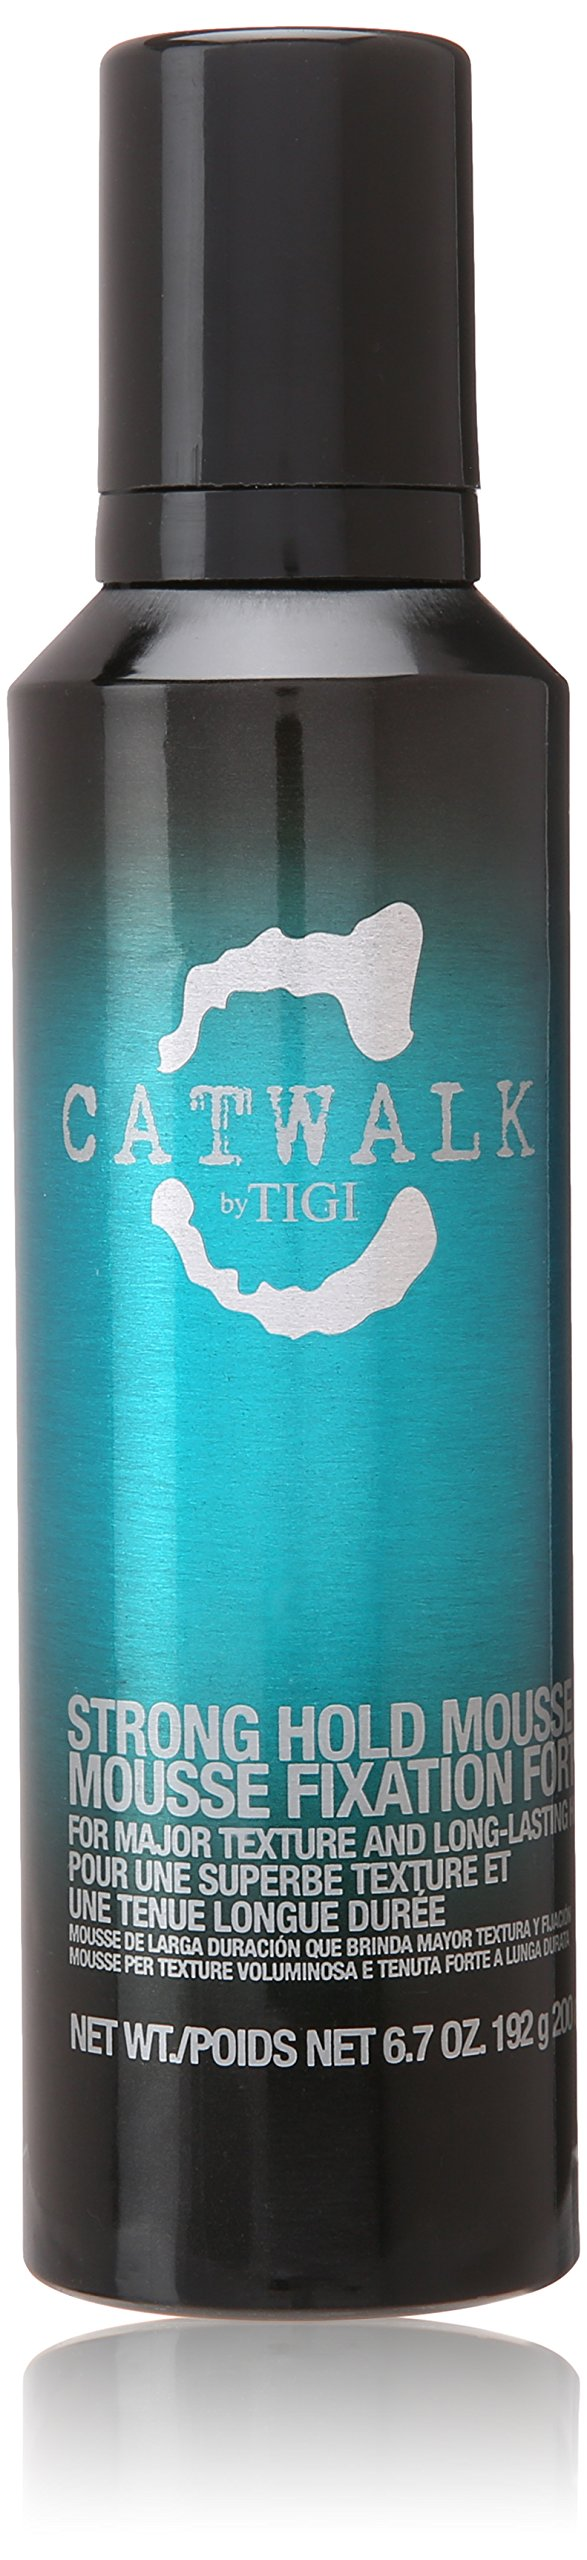 TIGI Catwalk Strong Hold Mousse for Unisex, 6.7 Ounce by TIGI Cosmetics